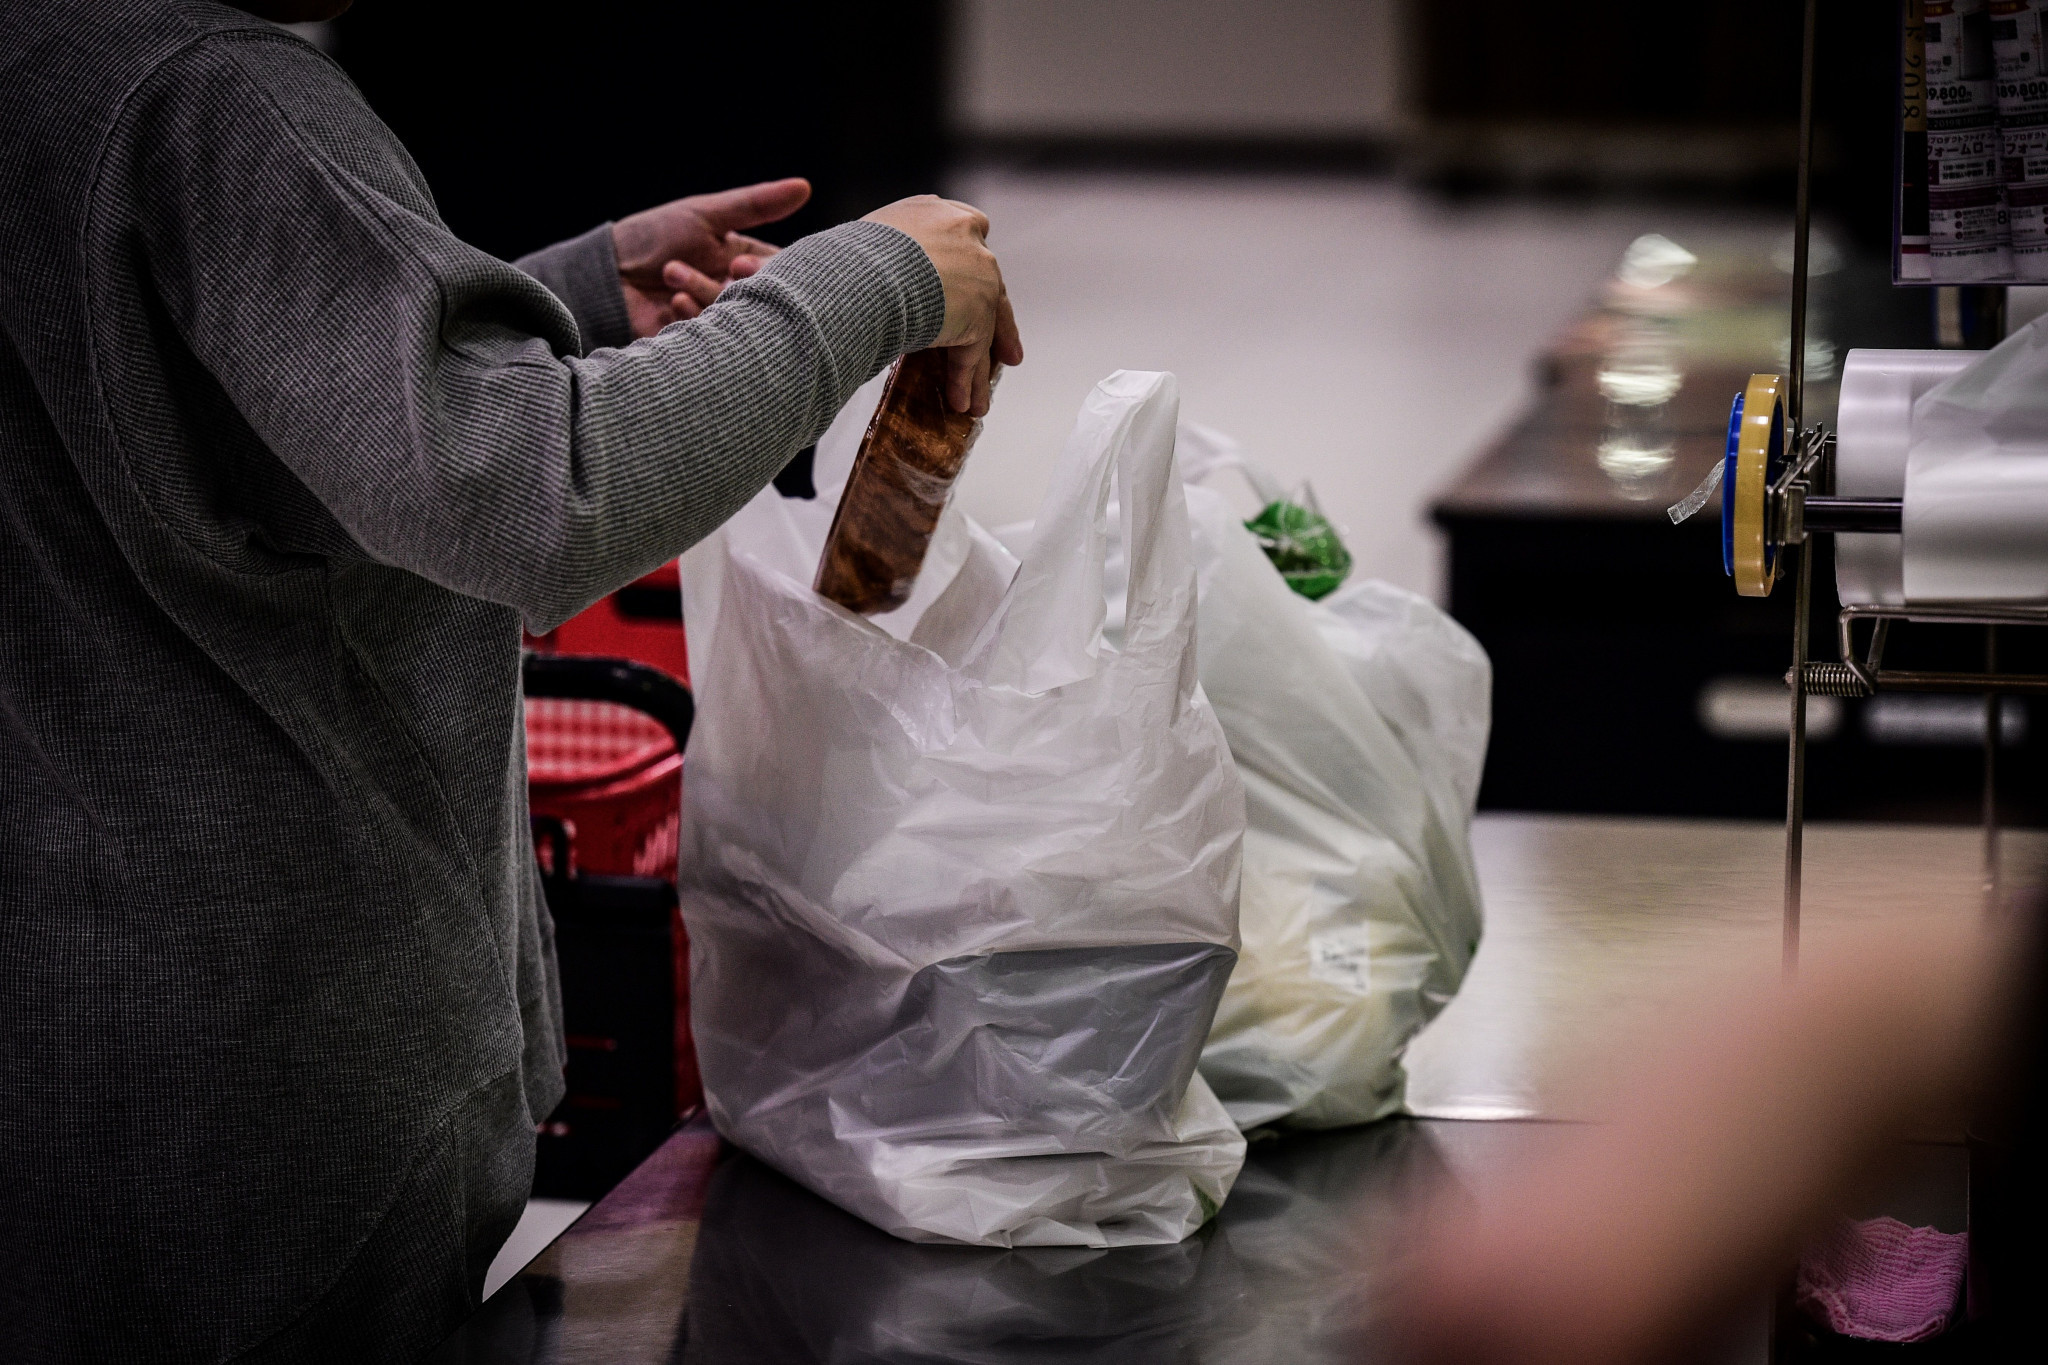 Japanese retailers, including supermarkets and convenience stores, will begin charging for plastic bags next summer prior to the Tokyo 2020 Olympic Games ©Getty Images